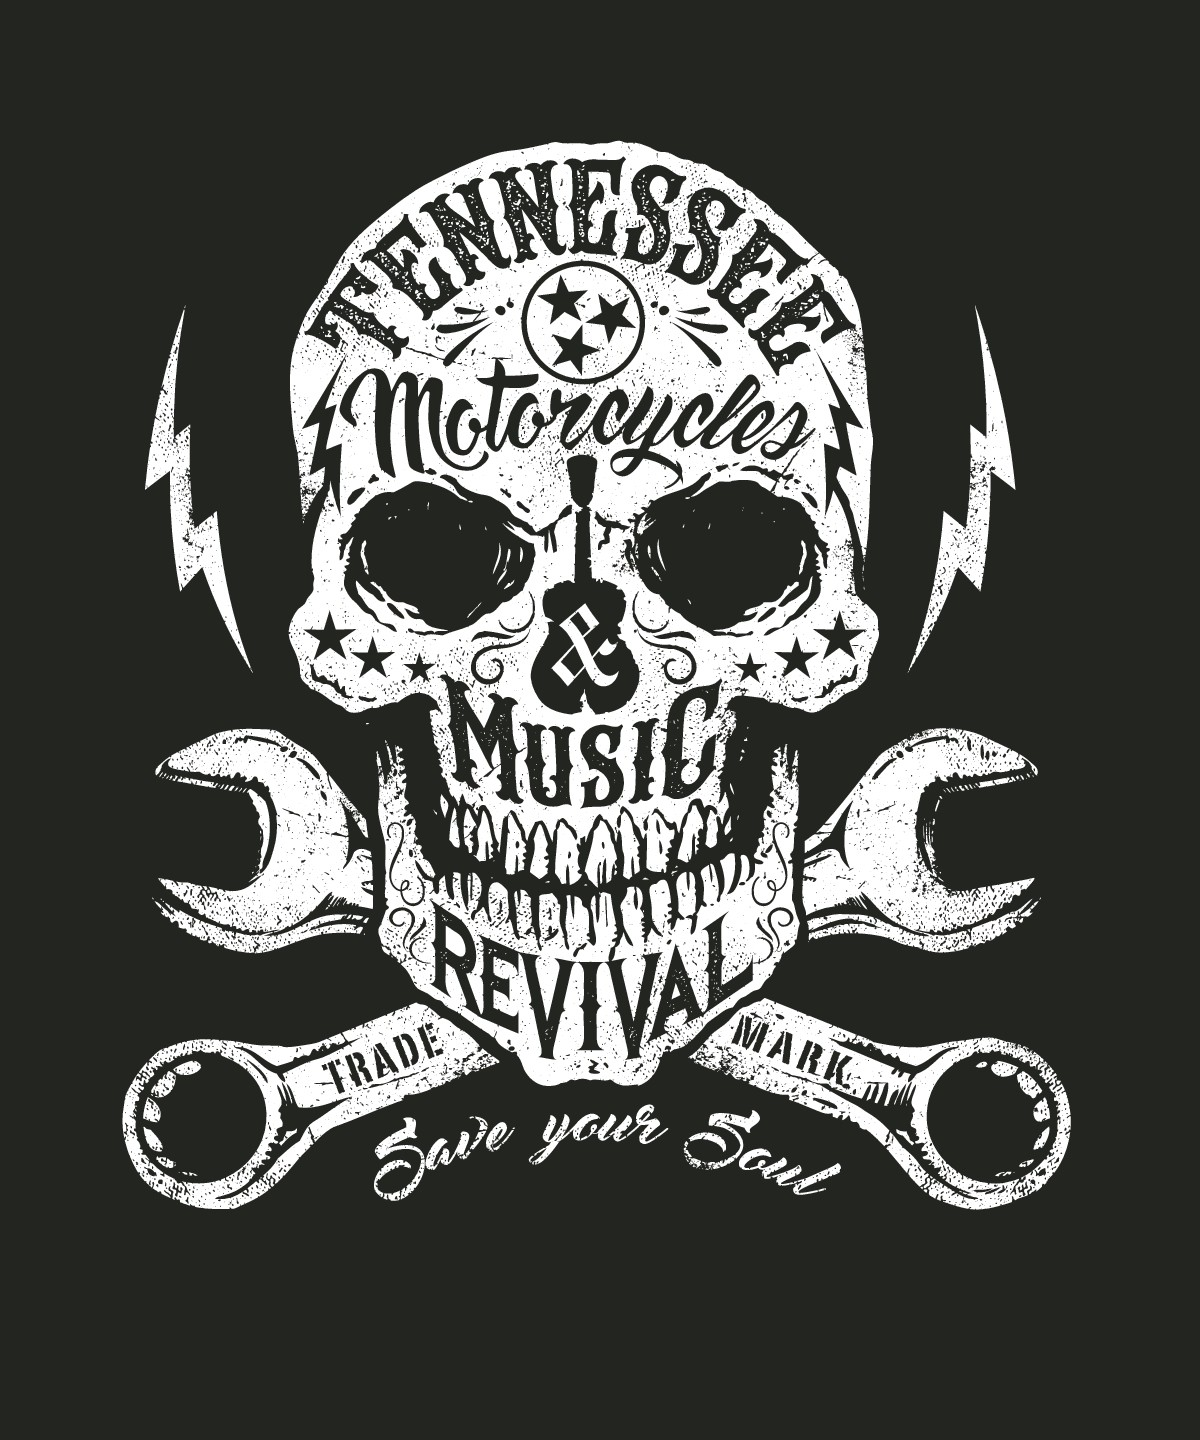 Tennessee Motorcycles And Music Revival Merch